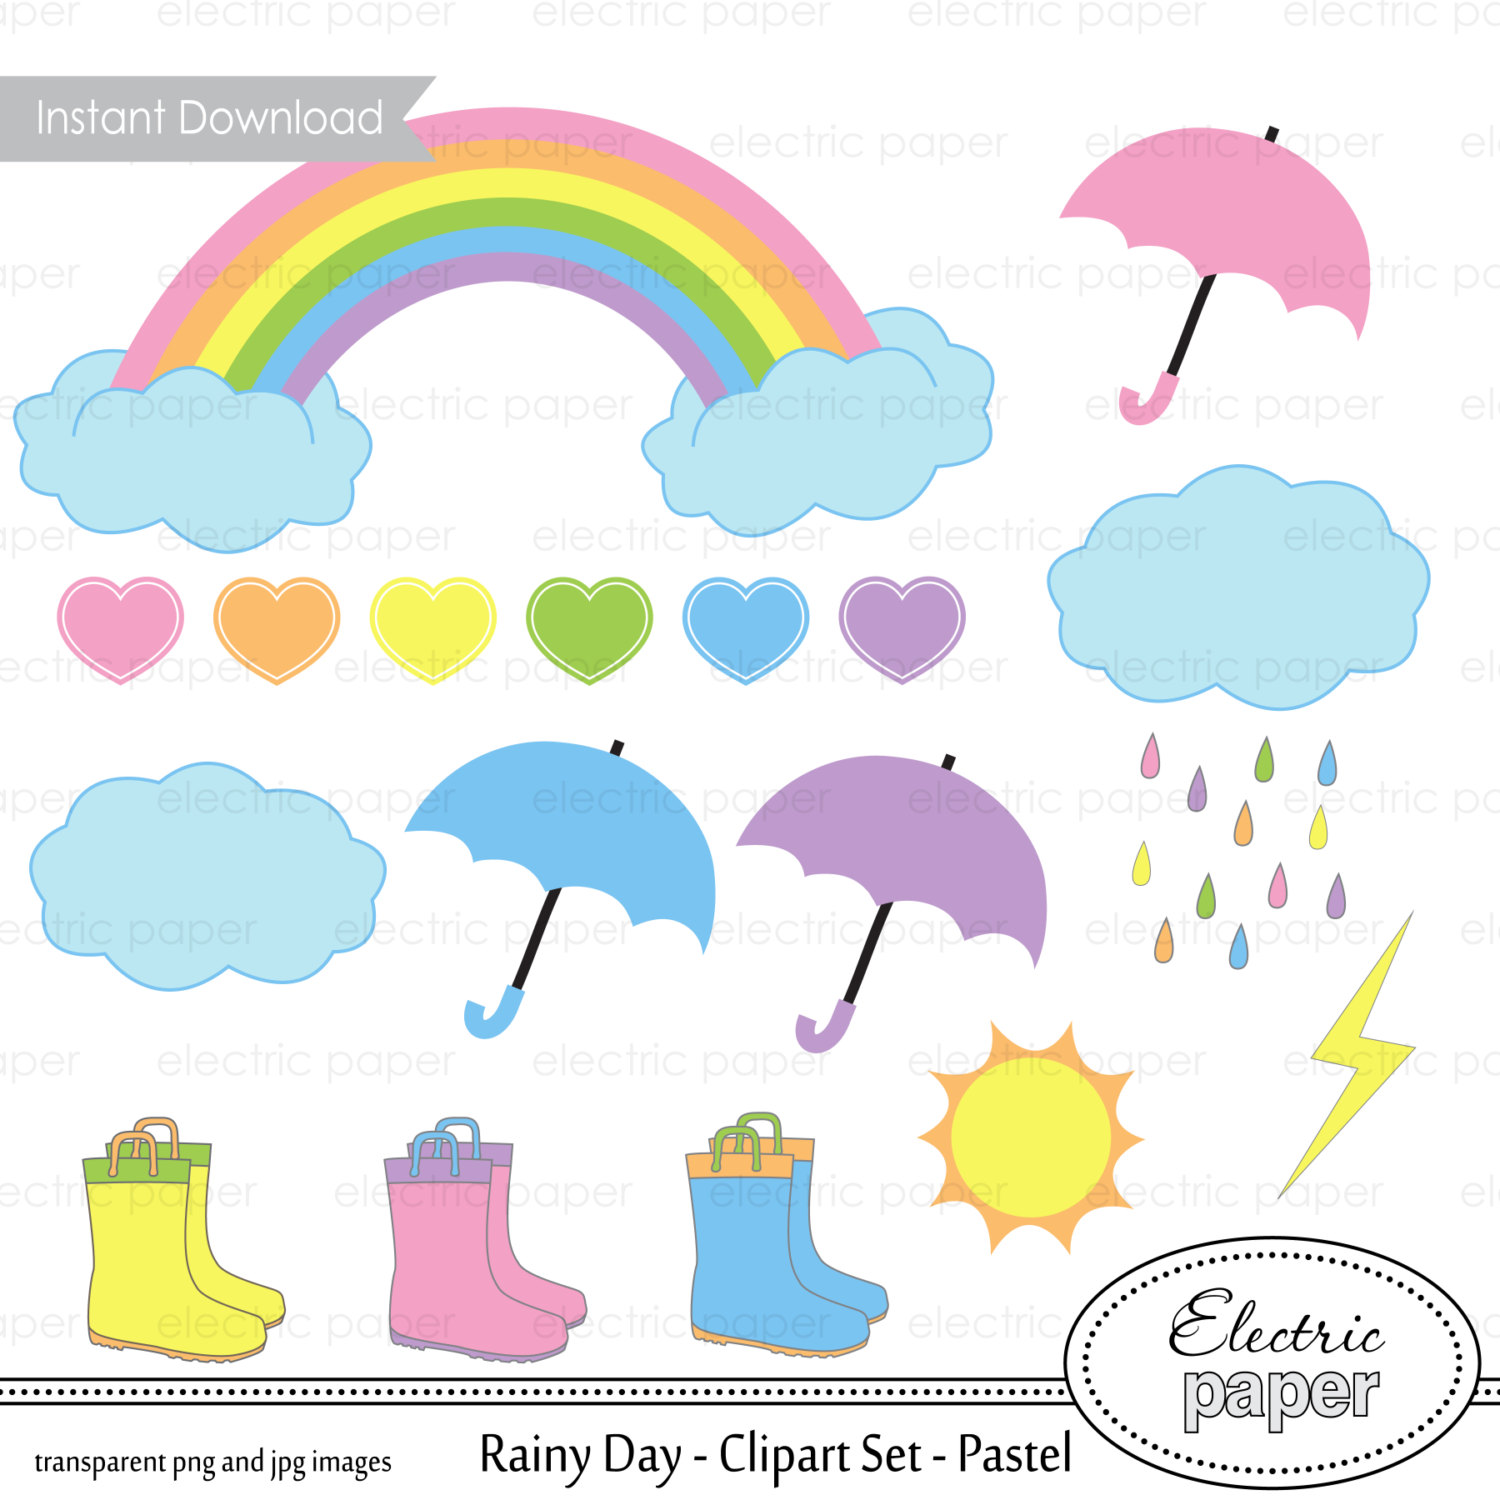 Clouds clipart pastel Pastels Rainbow Clouds Umbrella Day